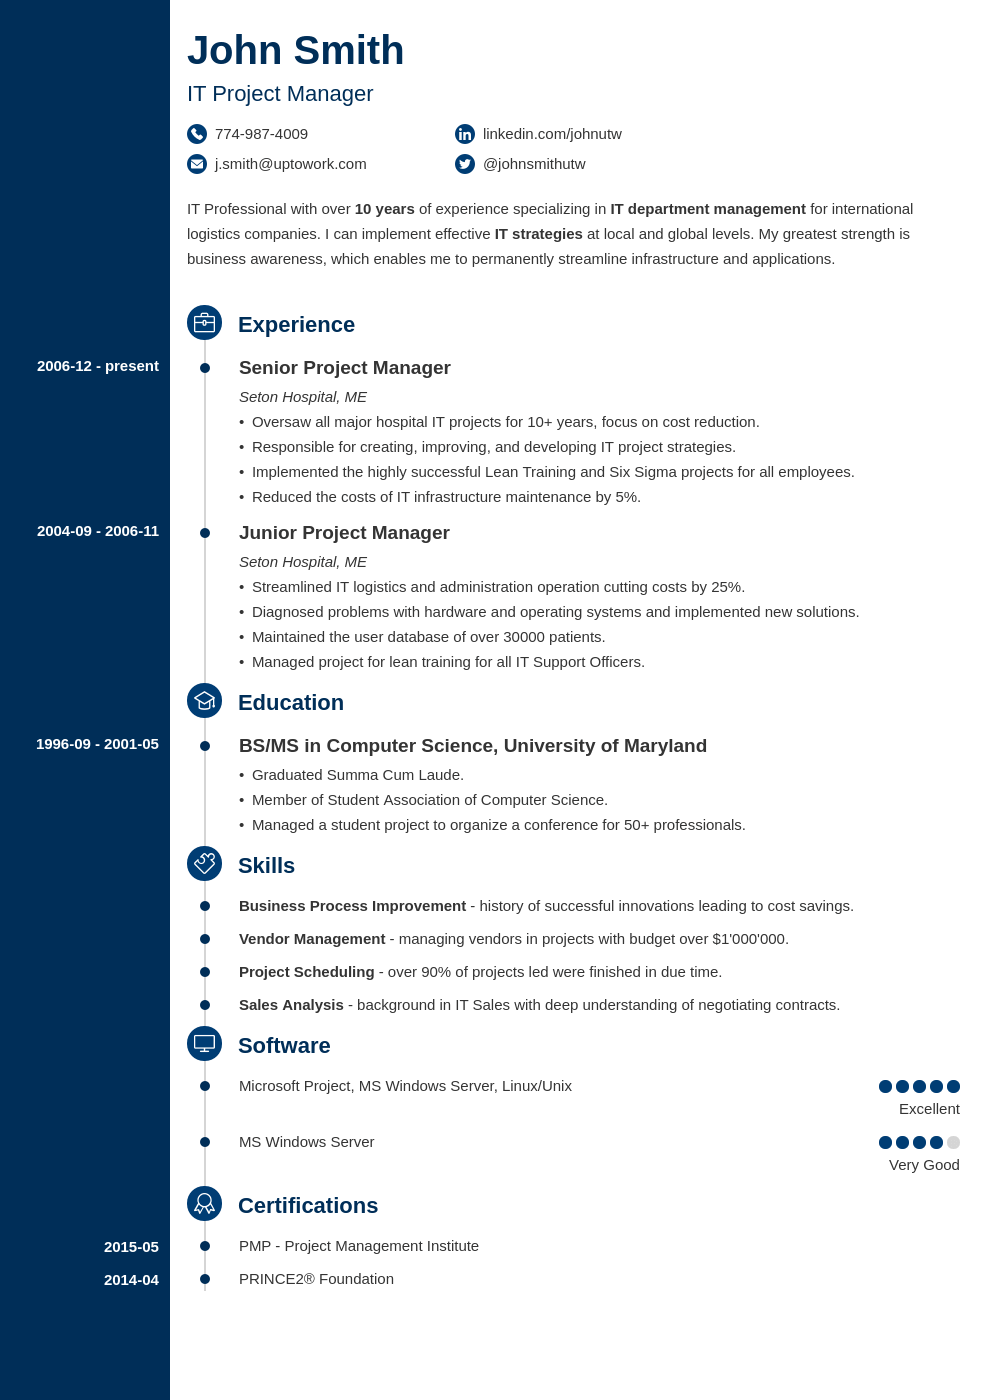 cv layout 20+ CV Templates: Create a Professional CV & Download in 5 Minutes